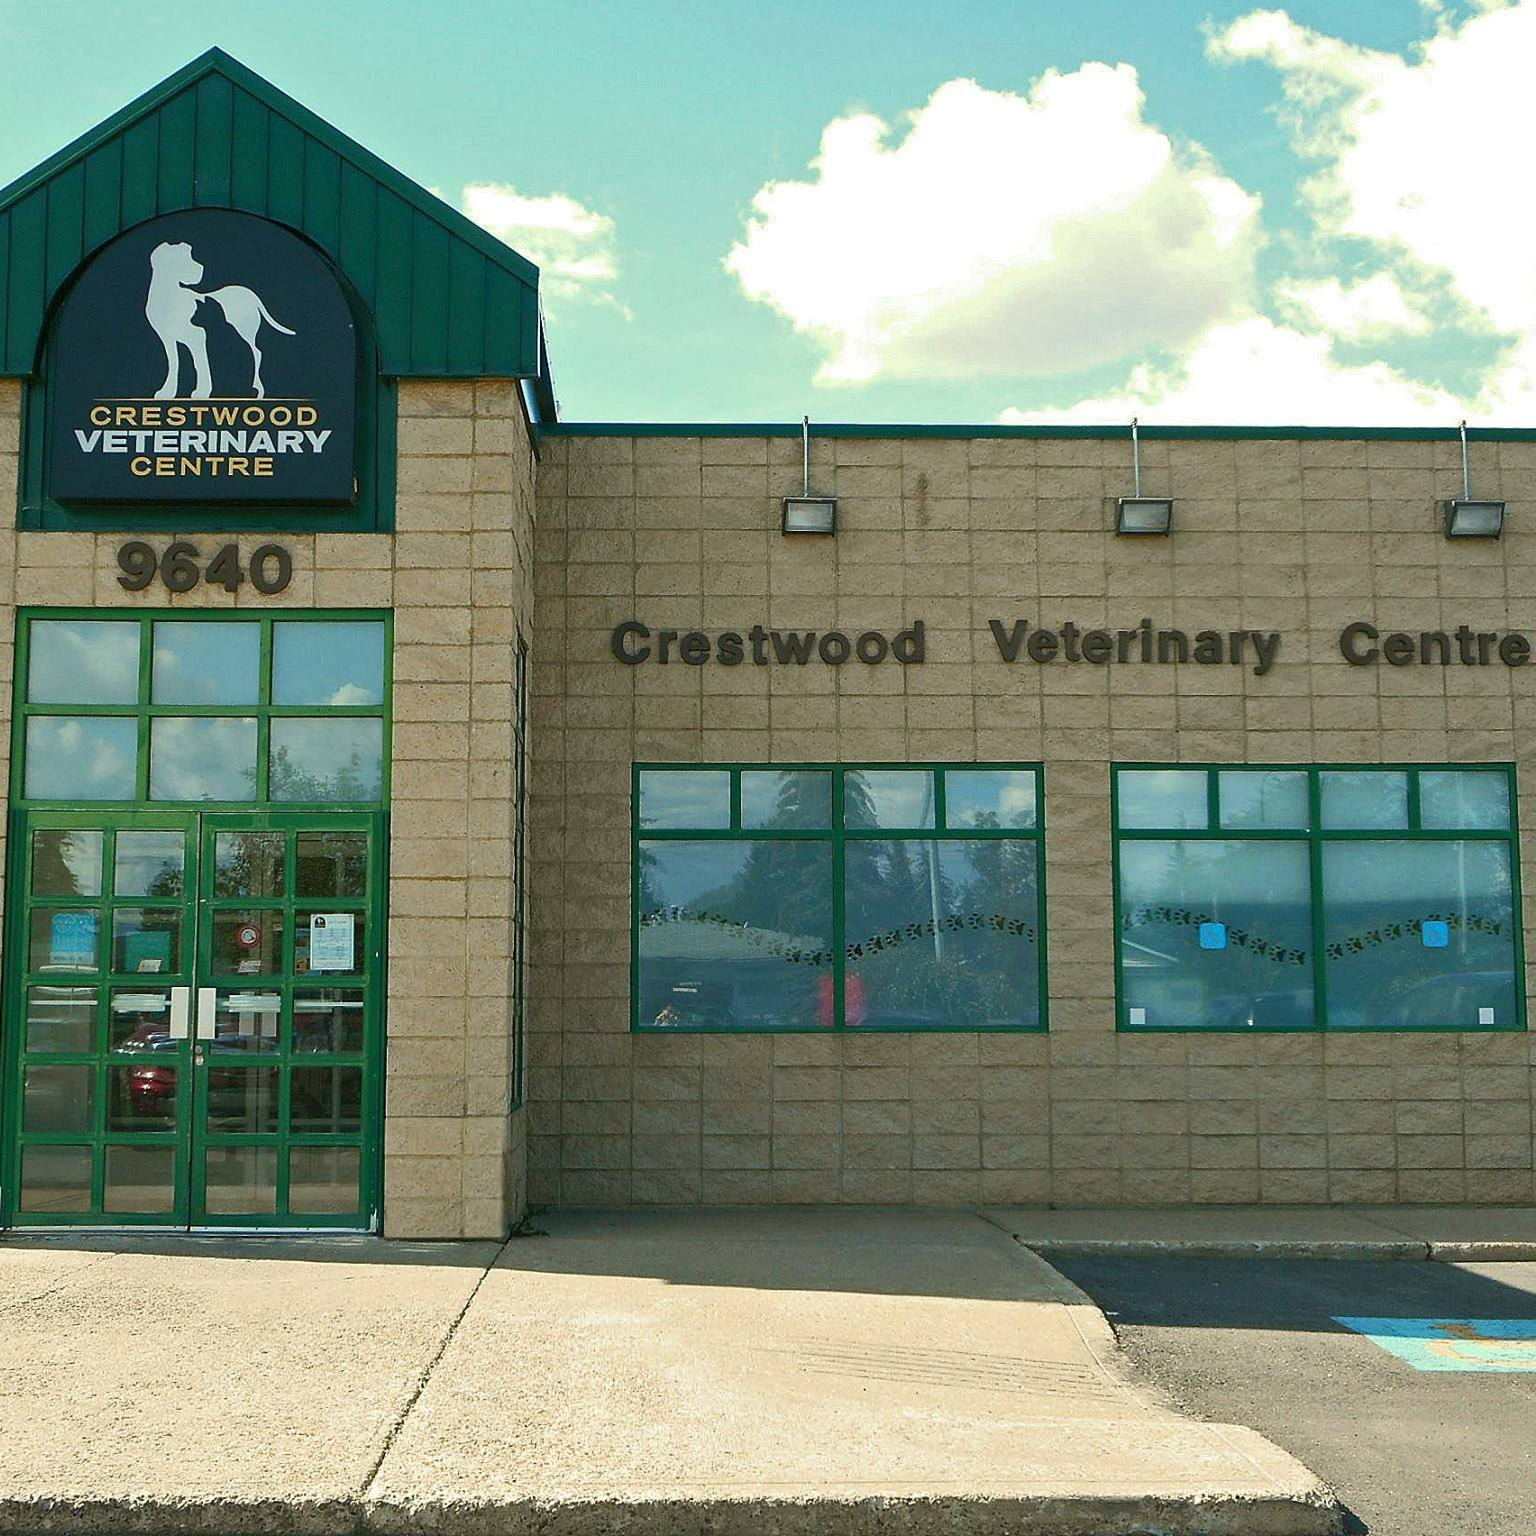 Crestwood Veterinary